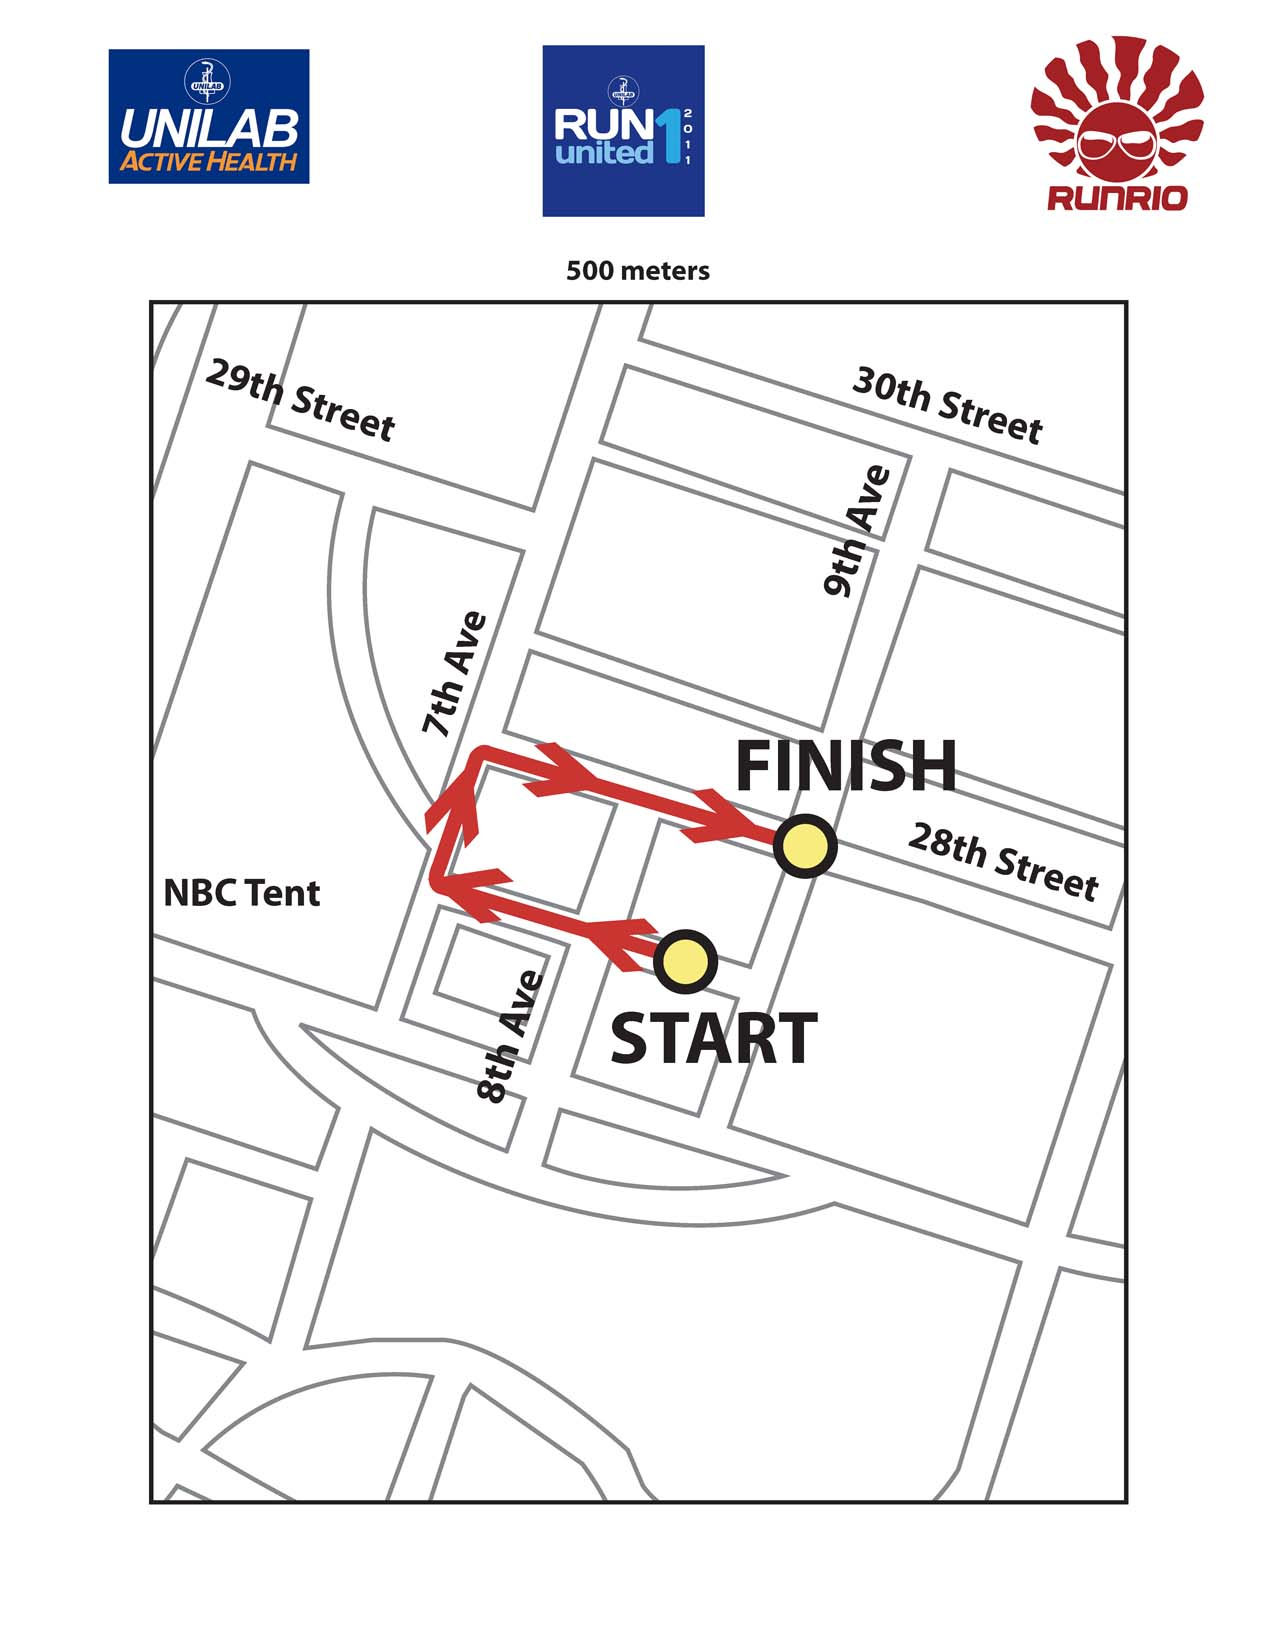 500m-Unilab-Race-Maps-2011